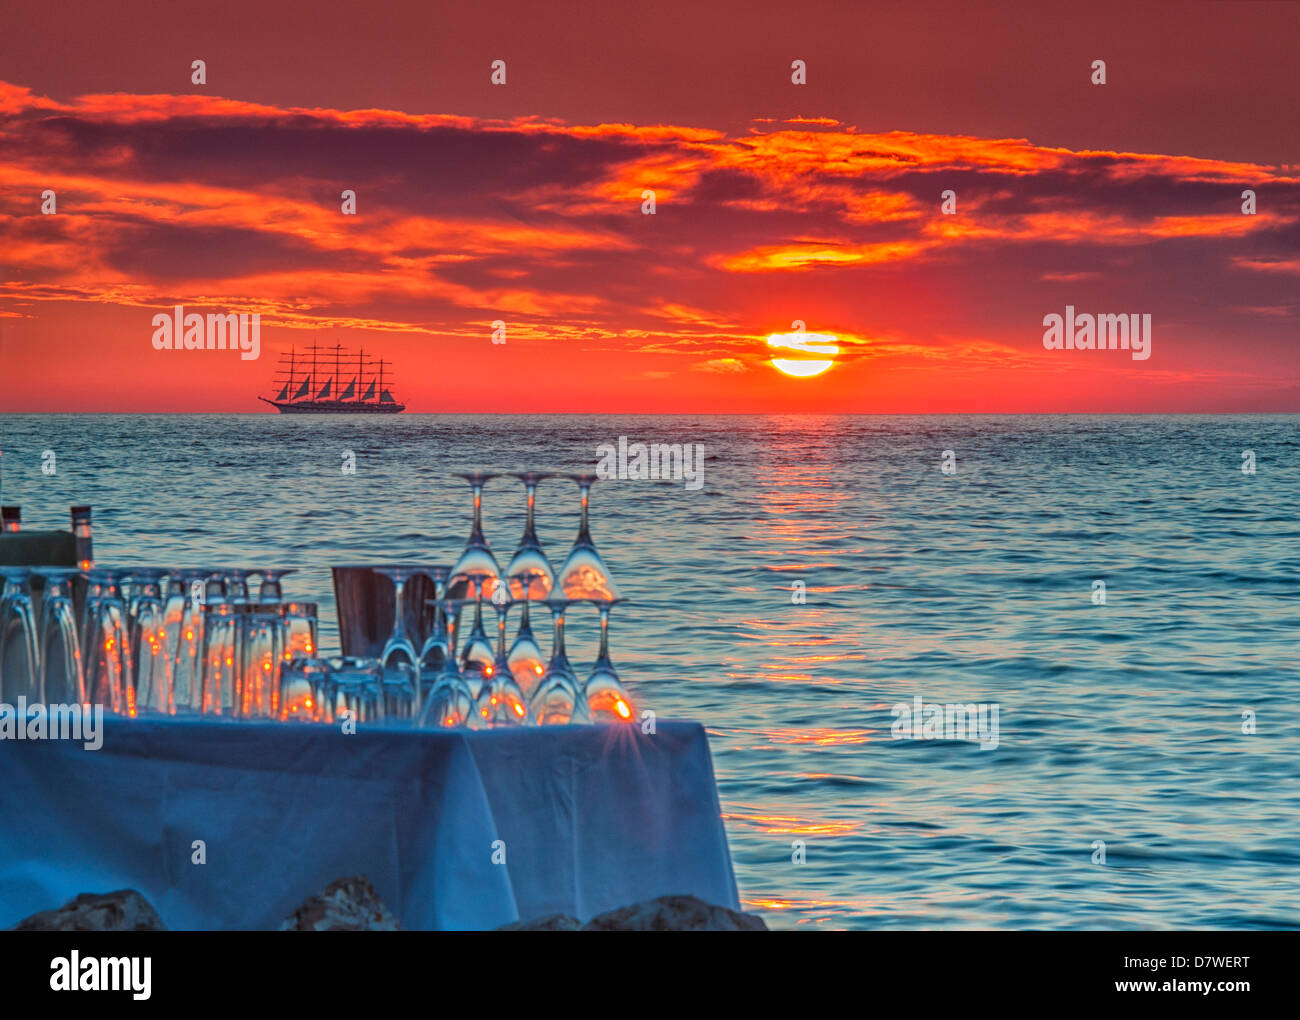 Red sunset with a Pirate ship on the distant horizon - Stock Image